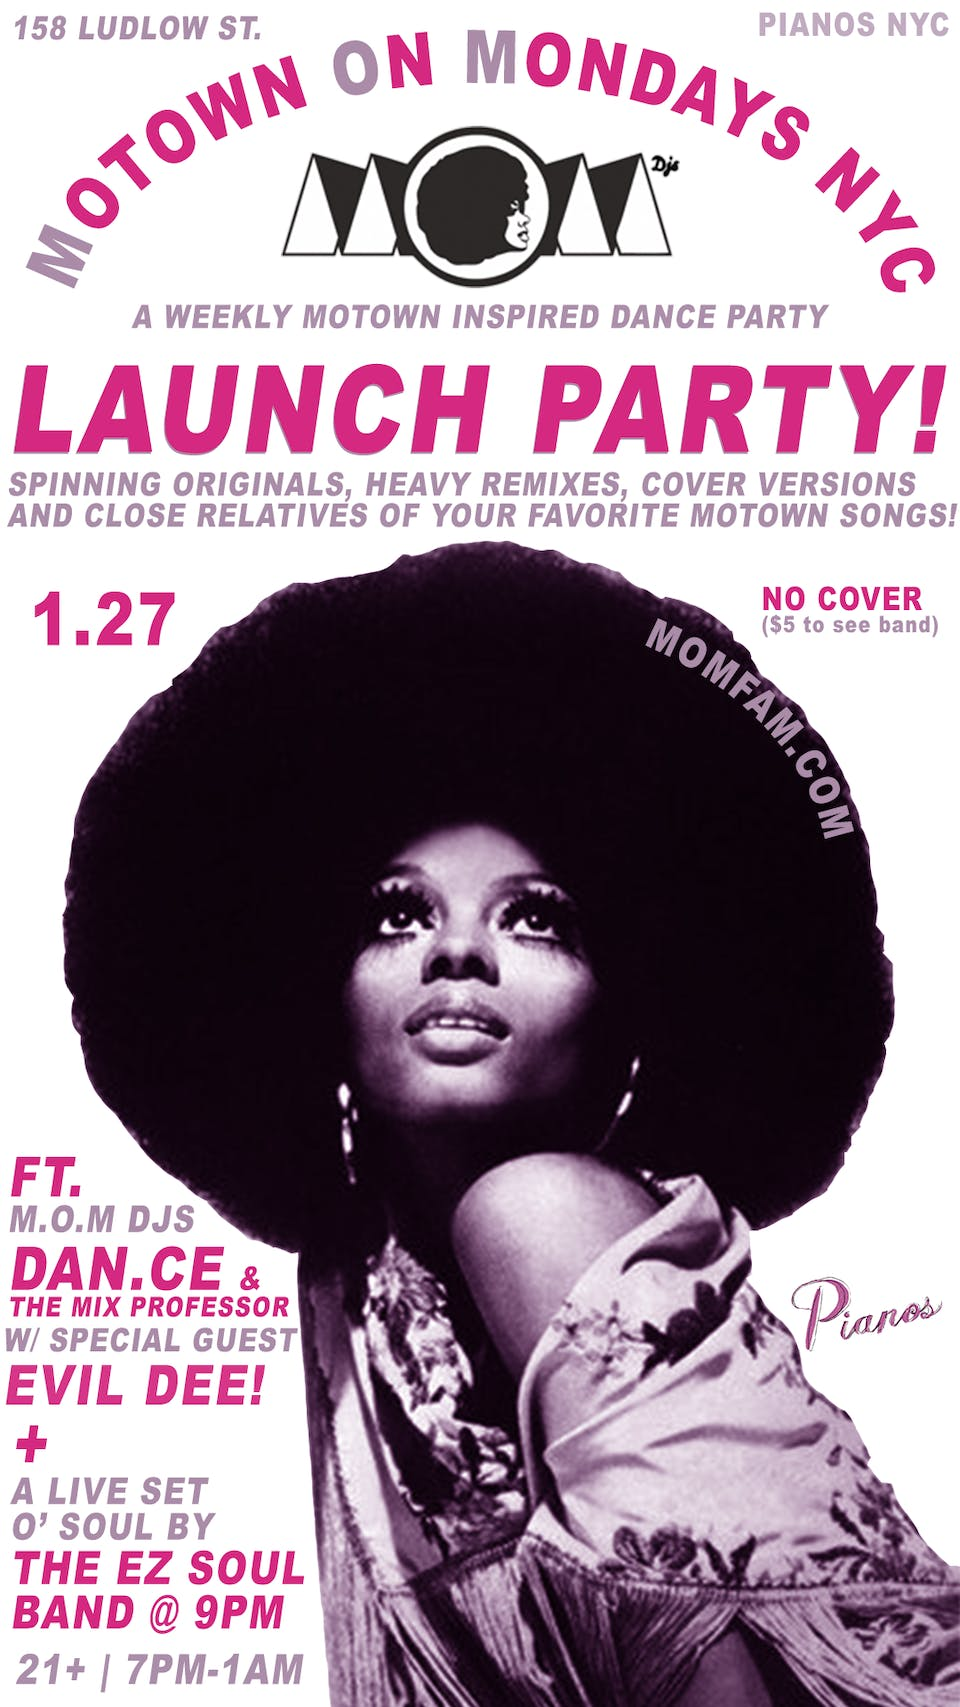 MOTOWN ON MONDAYS NYC LAUNCH PARTY